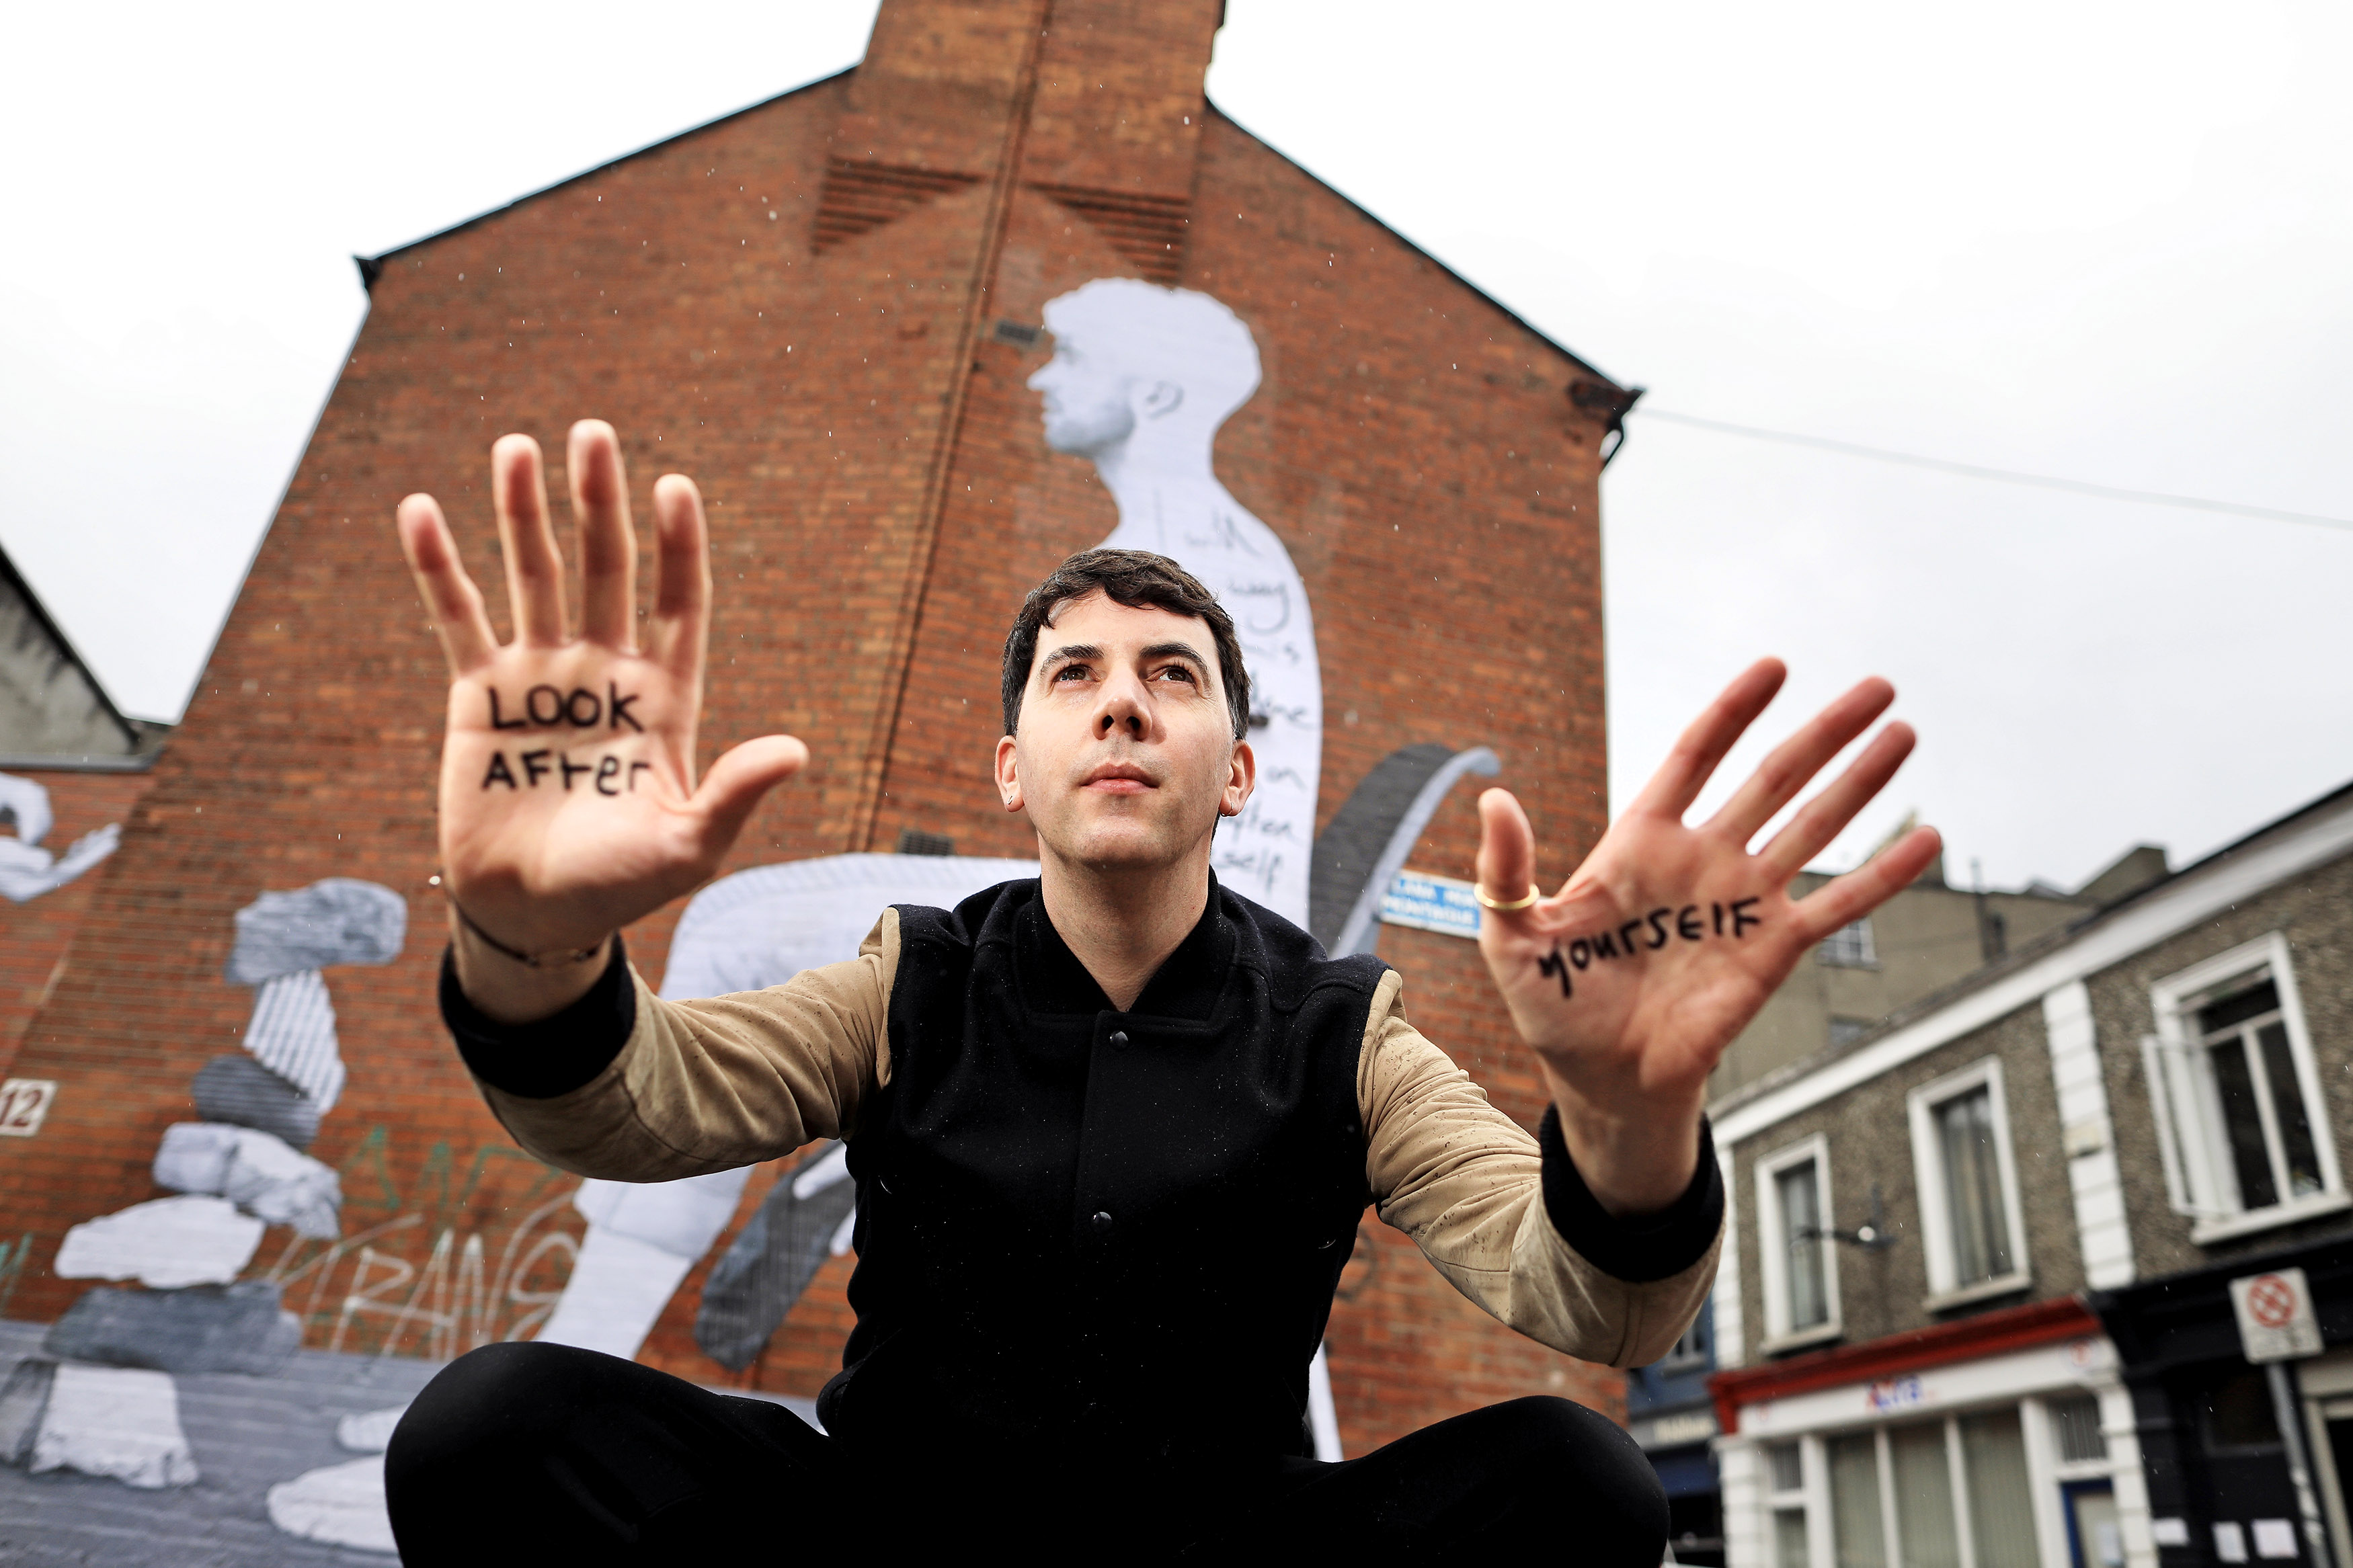 Only 3 in 10 Irish men say they would attend counselling/psychotherapy